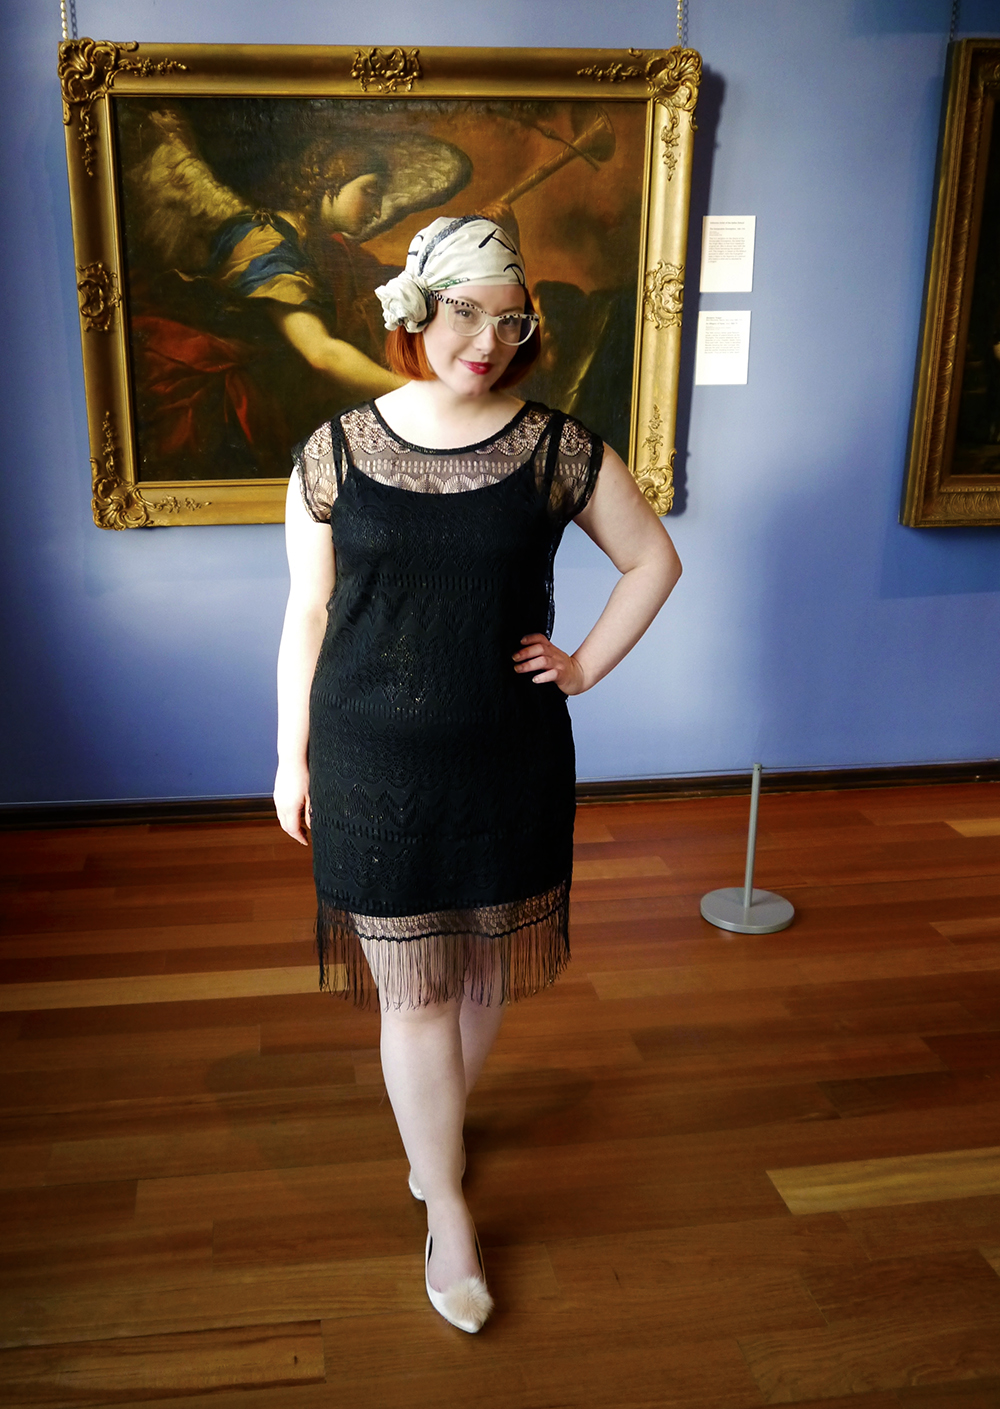 Styled by Helen, Scottish Bloggers, Dundee blogger, 1920s fashion, 1920's style, vintage style, headscarf style, scarf style, vintage scarf, George at Asda, ASOS pom pom shoes, pom pom flats, 1920s headscarf style, fringed dress, The McManus, Dundee